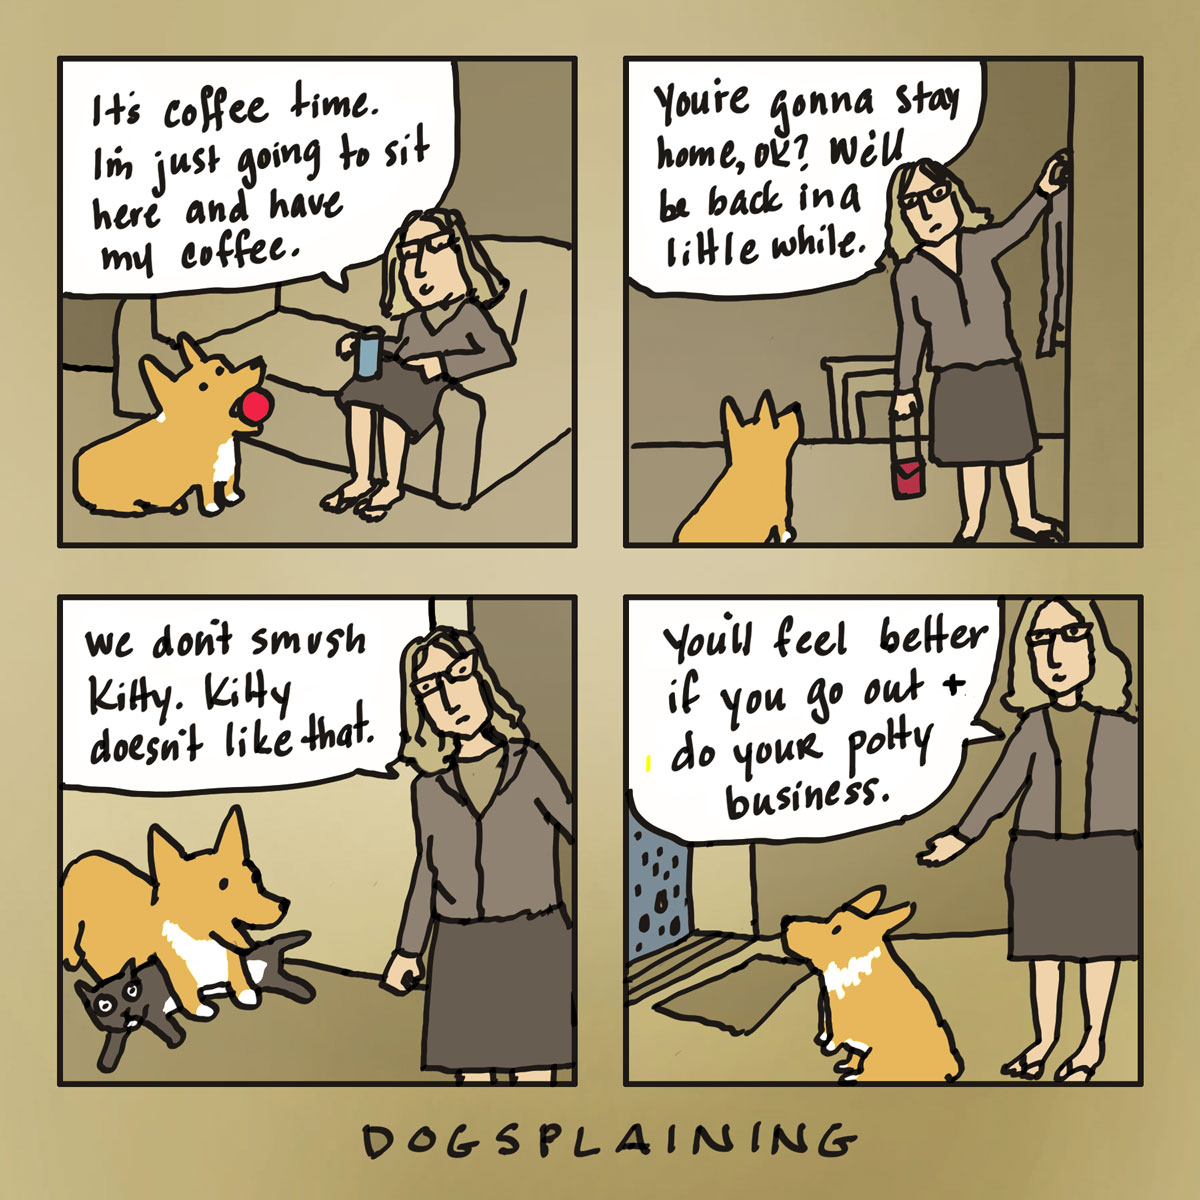 Dogsplaining